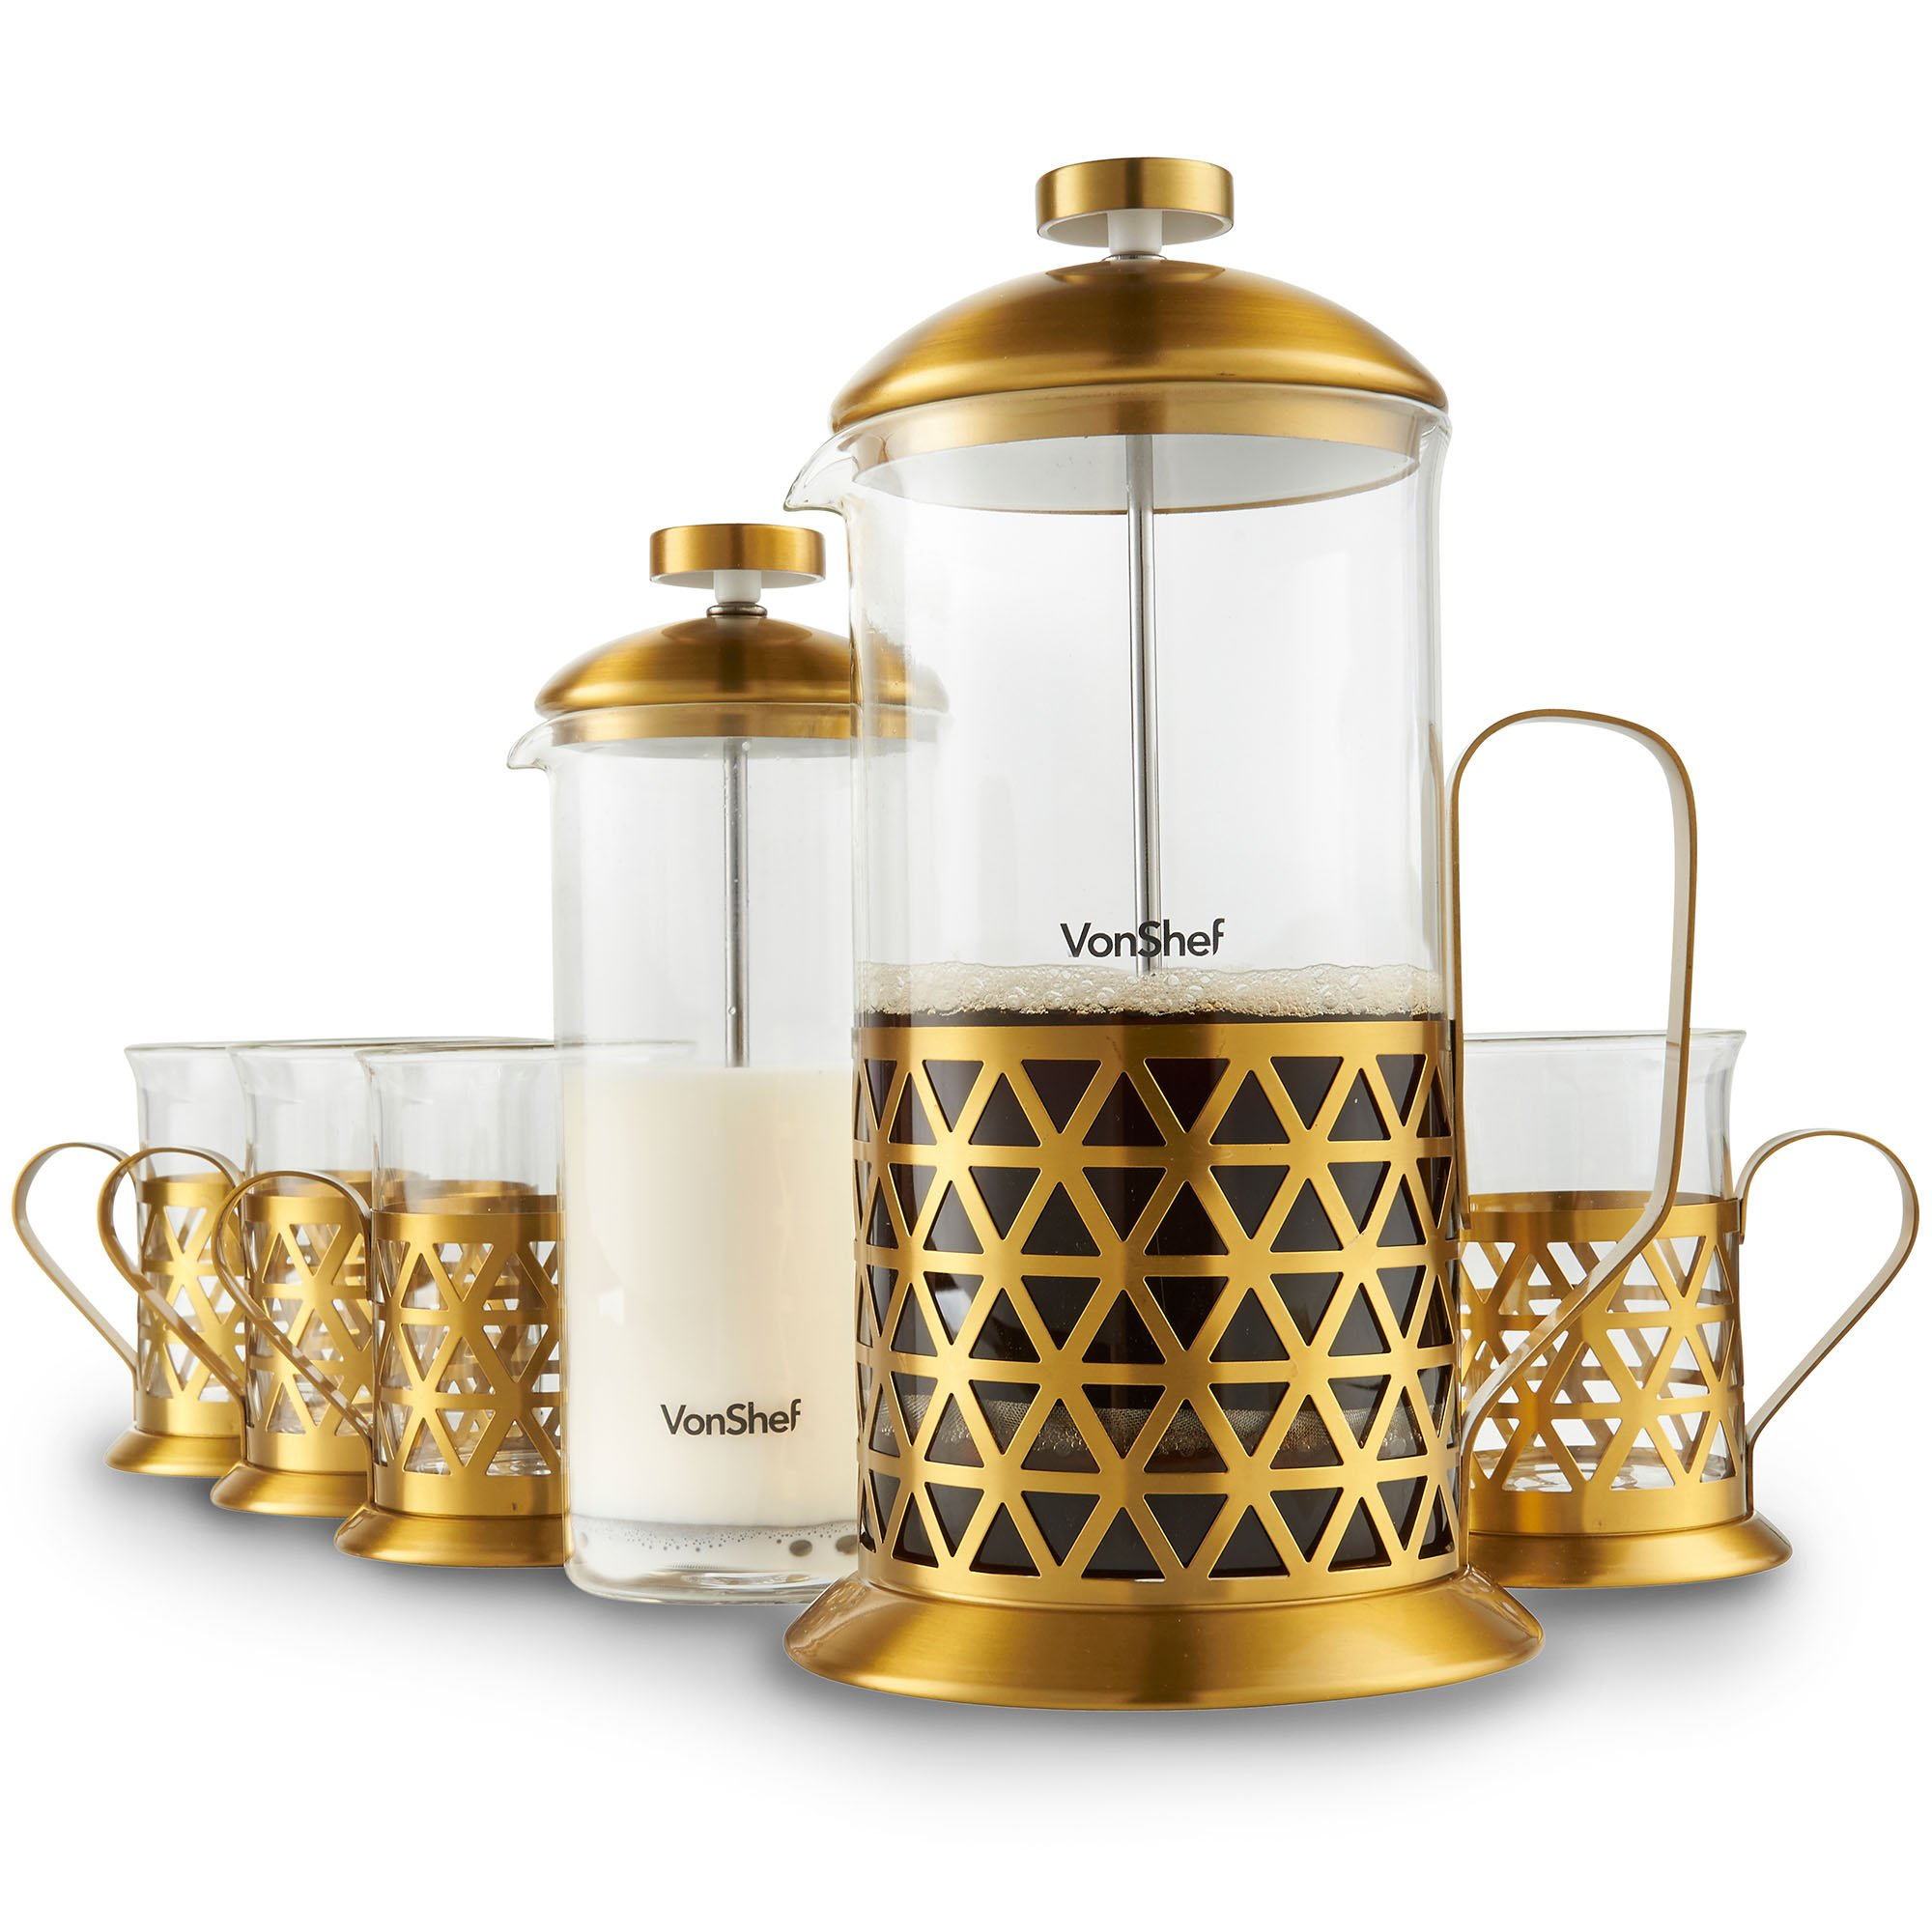 VonShef French Press Coffee Cafetiere Set with Milk Frother and 4 Serving Cups, Stainless Steel, Glass and Gold, 34 Fluid Ounces, 8 Cup Capacity by VonShef